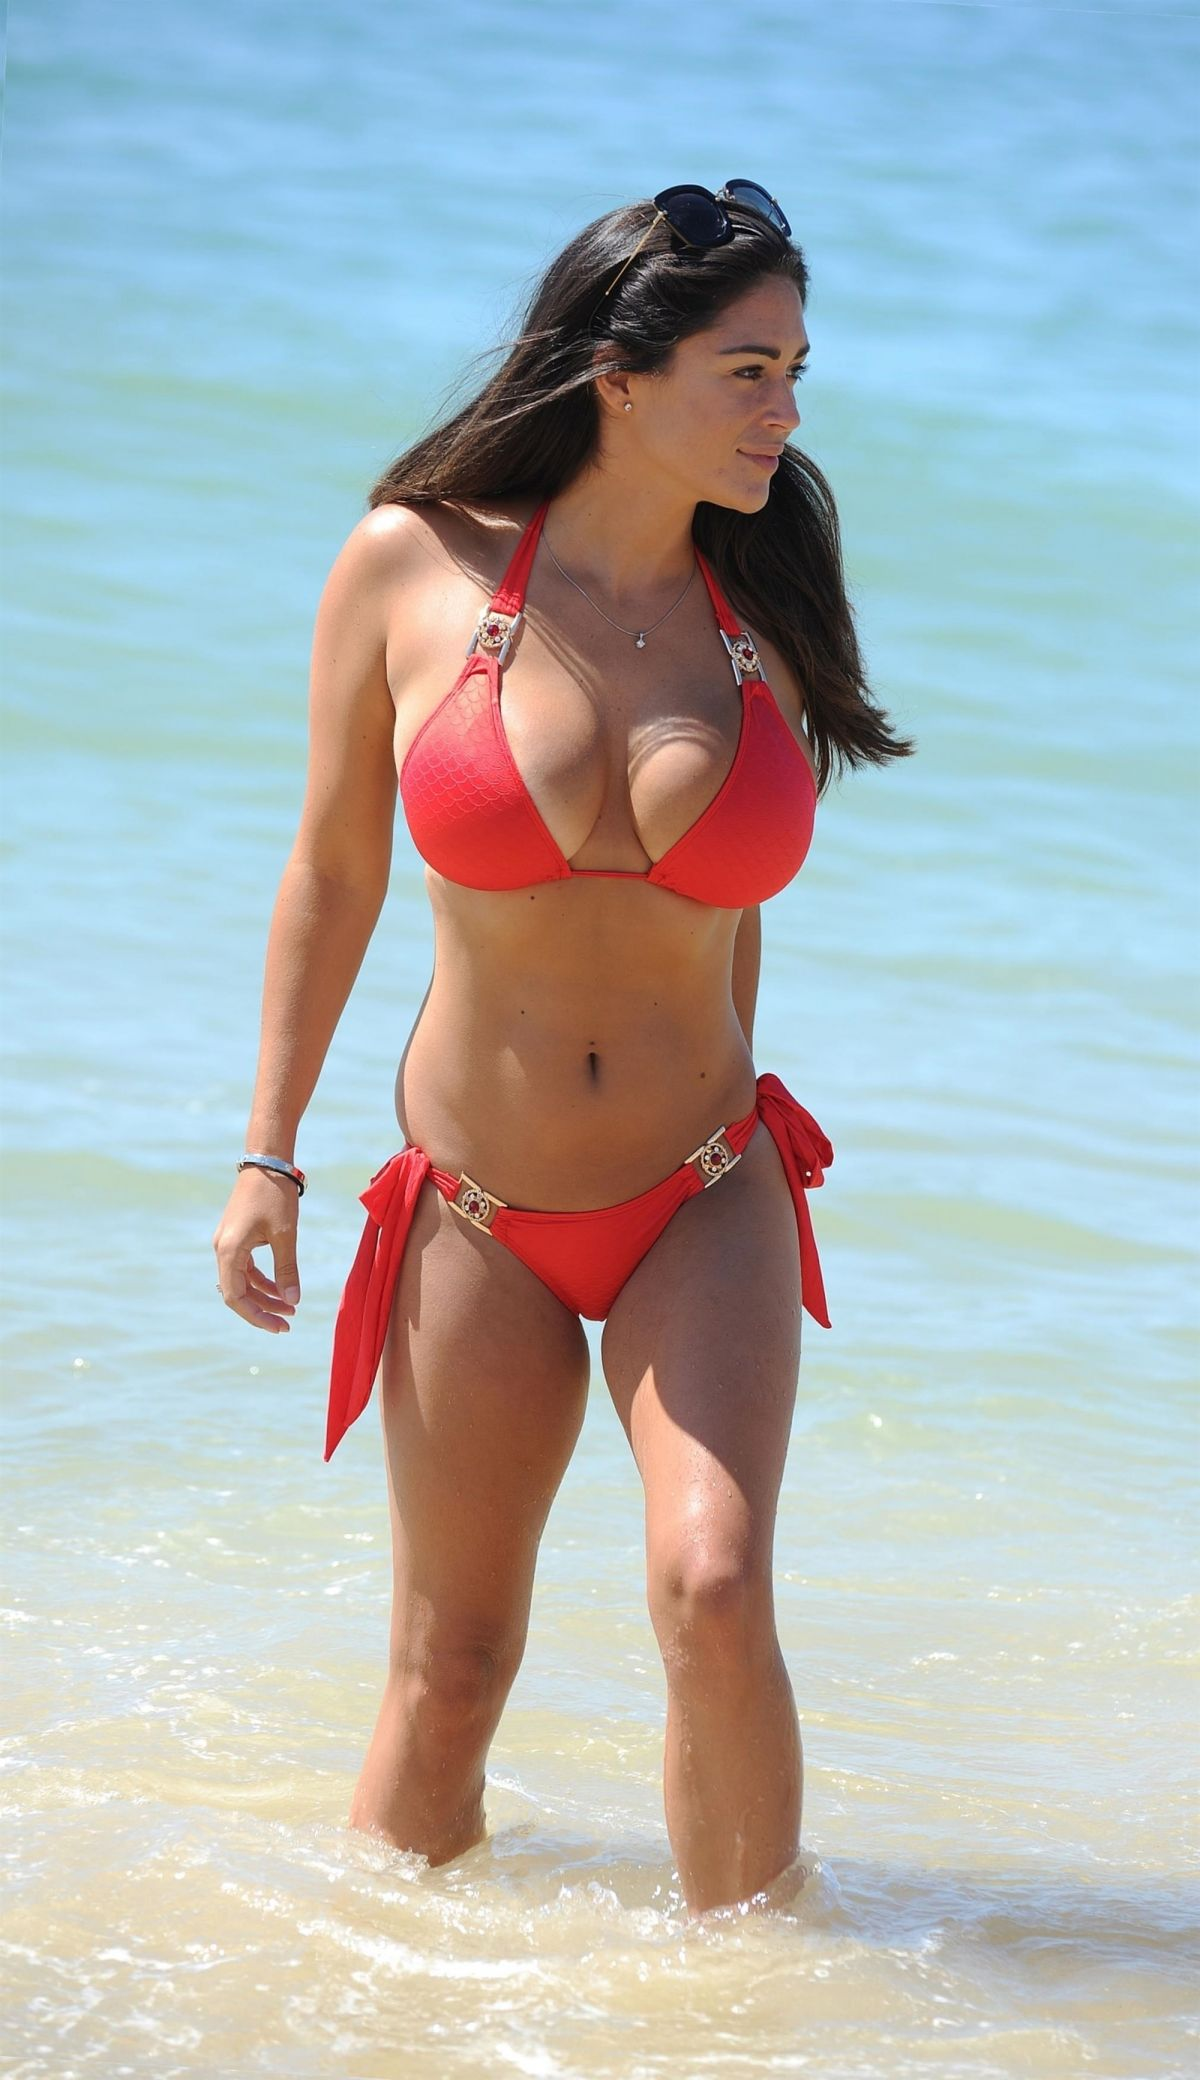 Casey Batchelor in Blue Bikini in Cyprus Pic 12 of 35